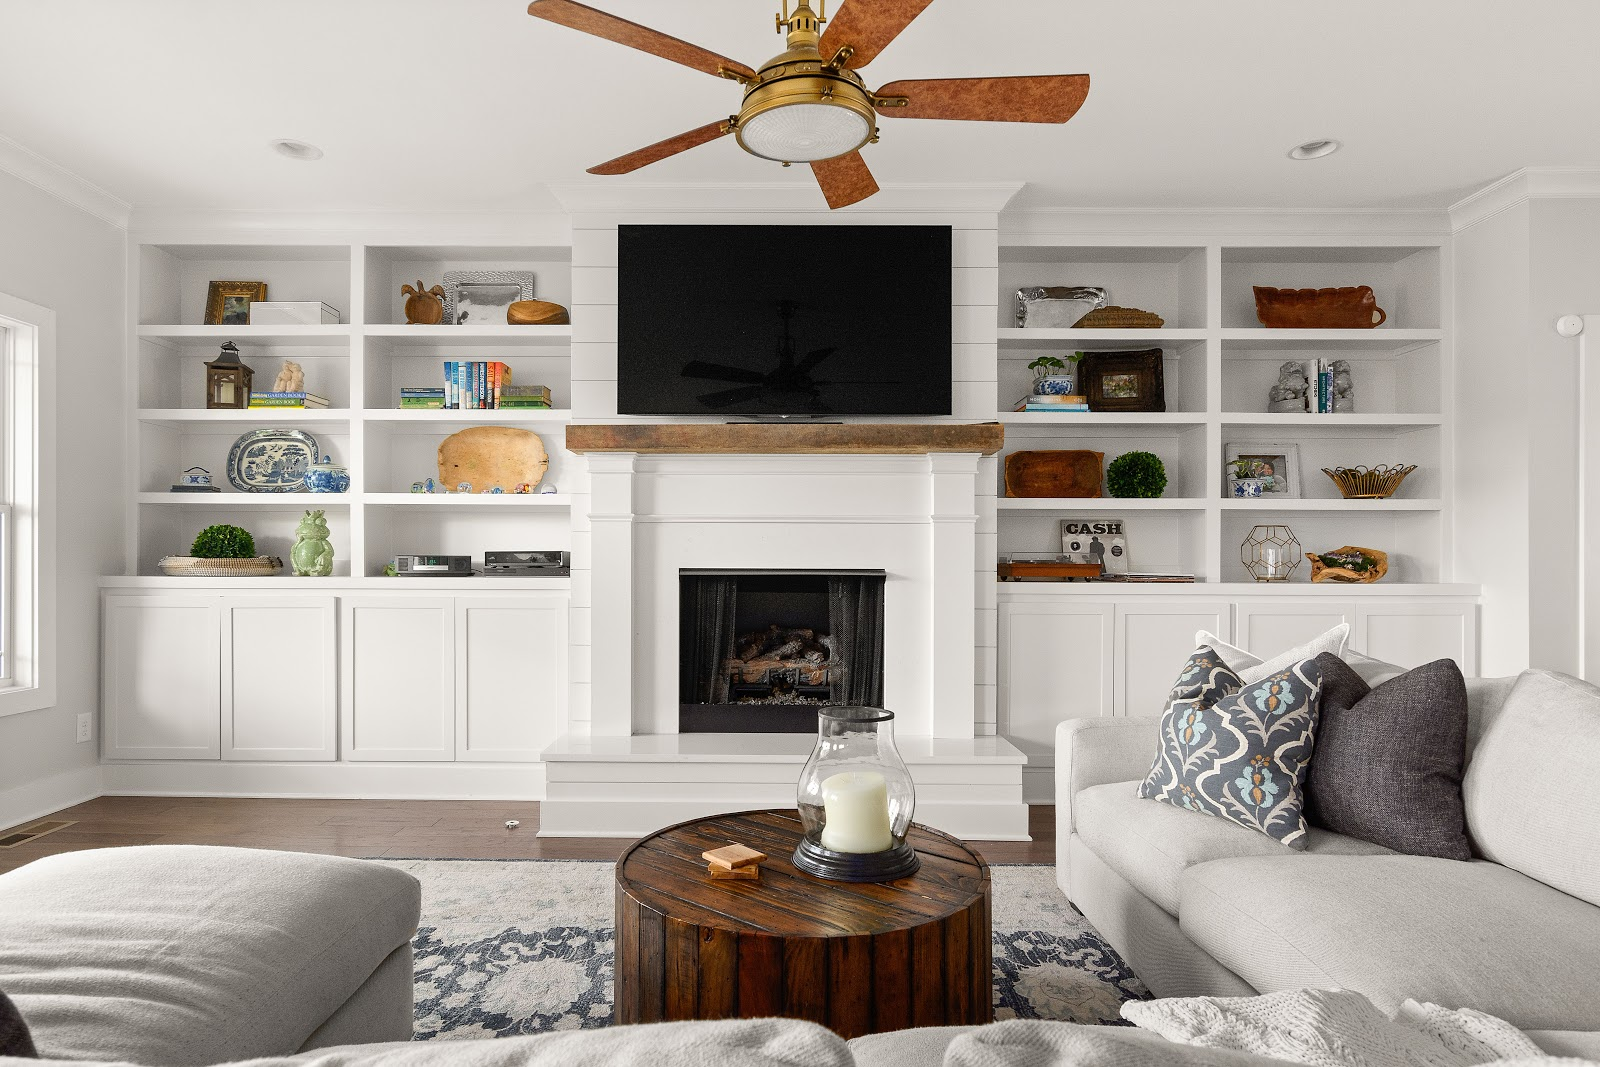 lake house tn built-in book shelves cabinets around fireplace timeless look white